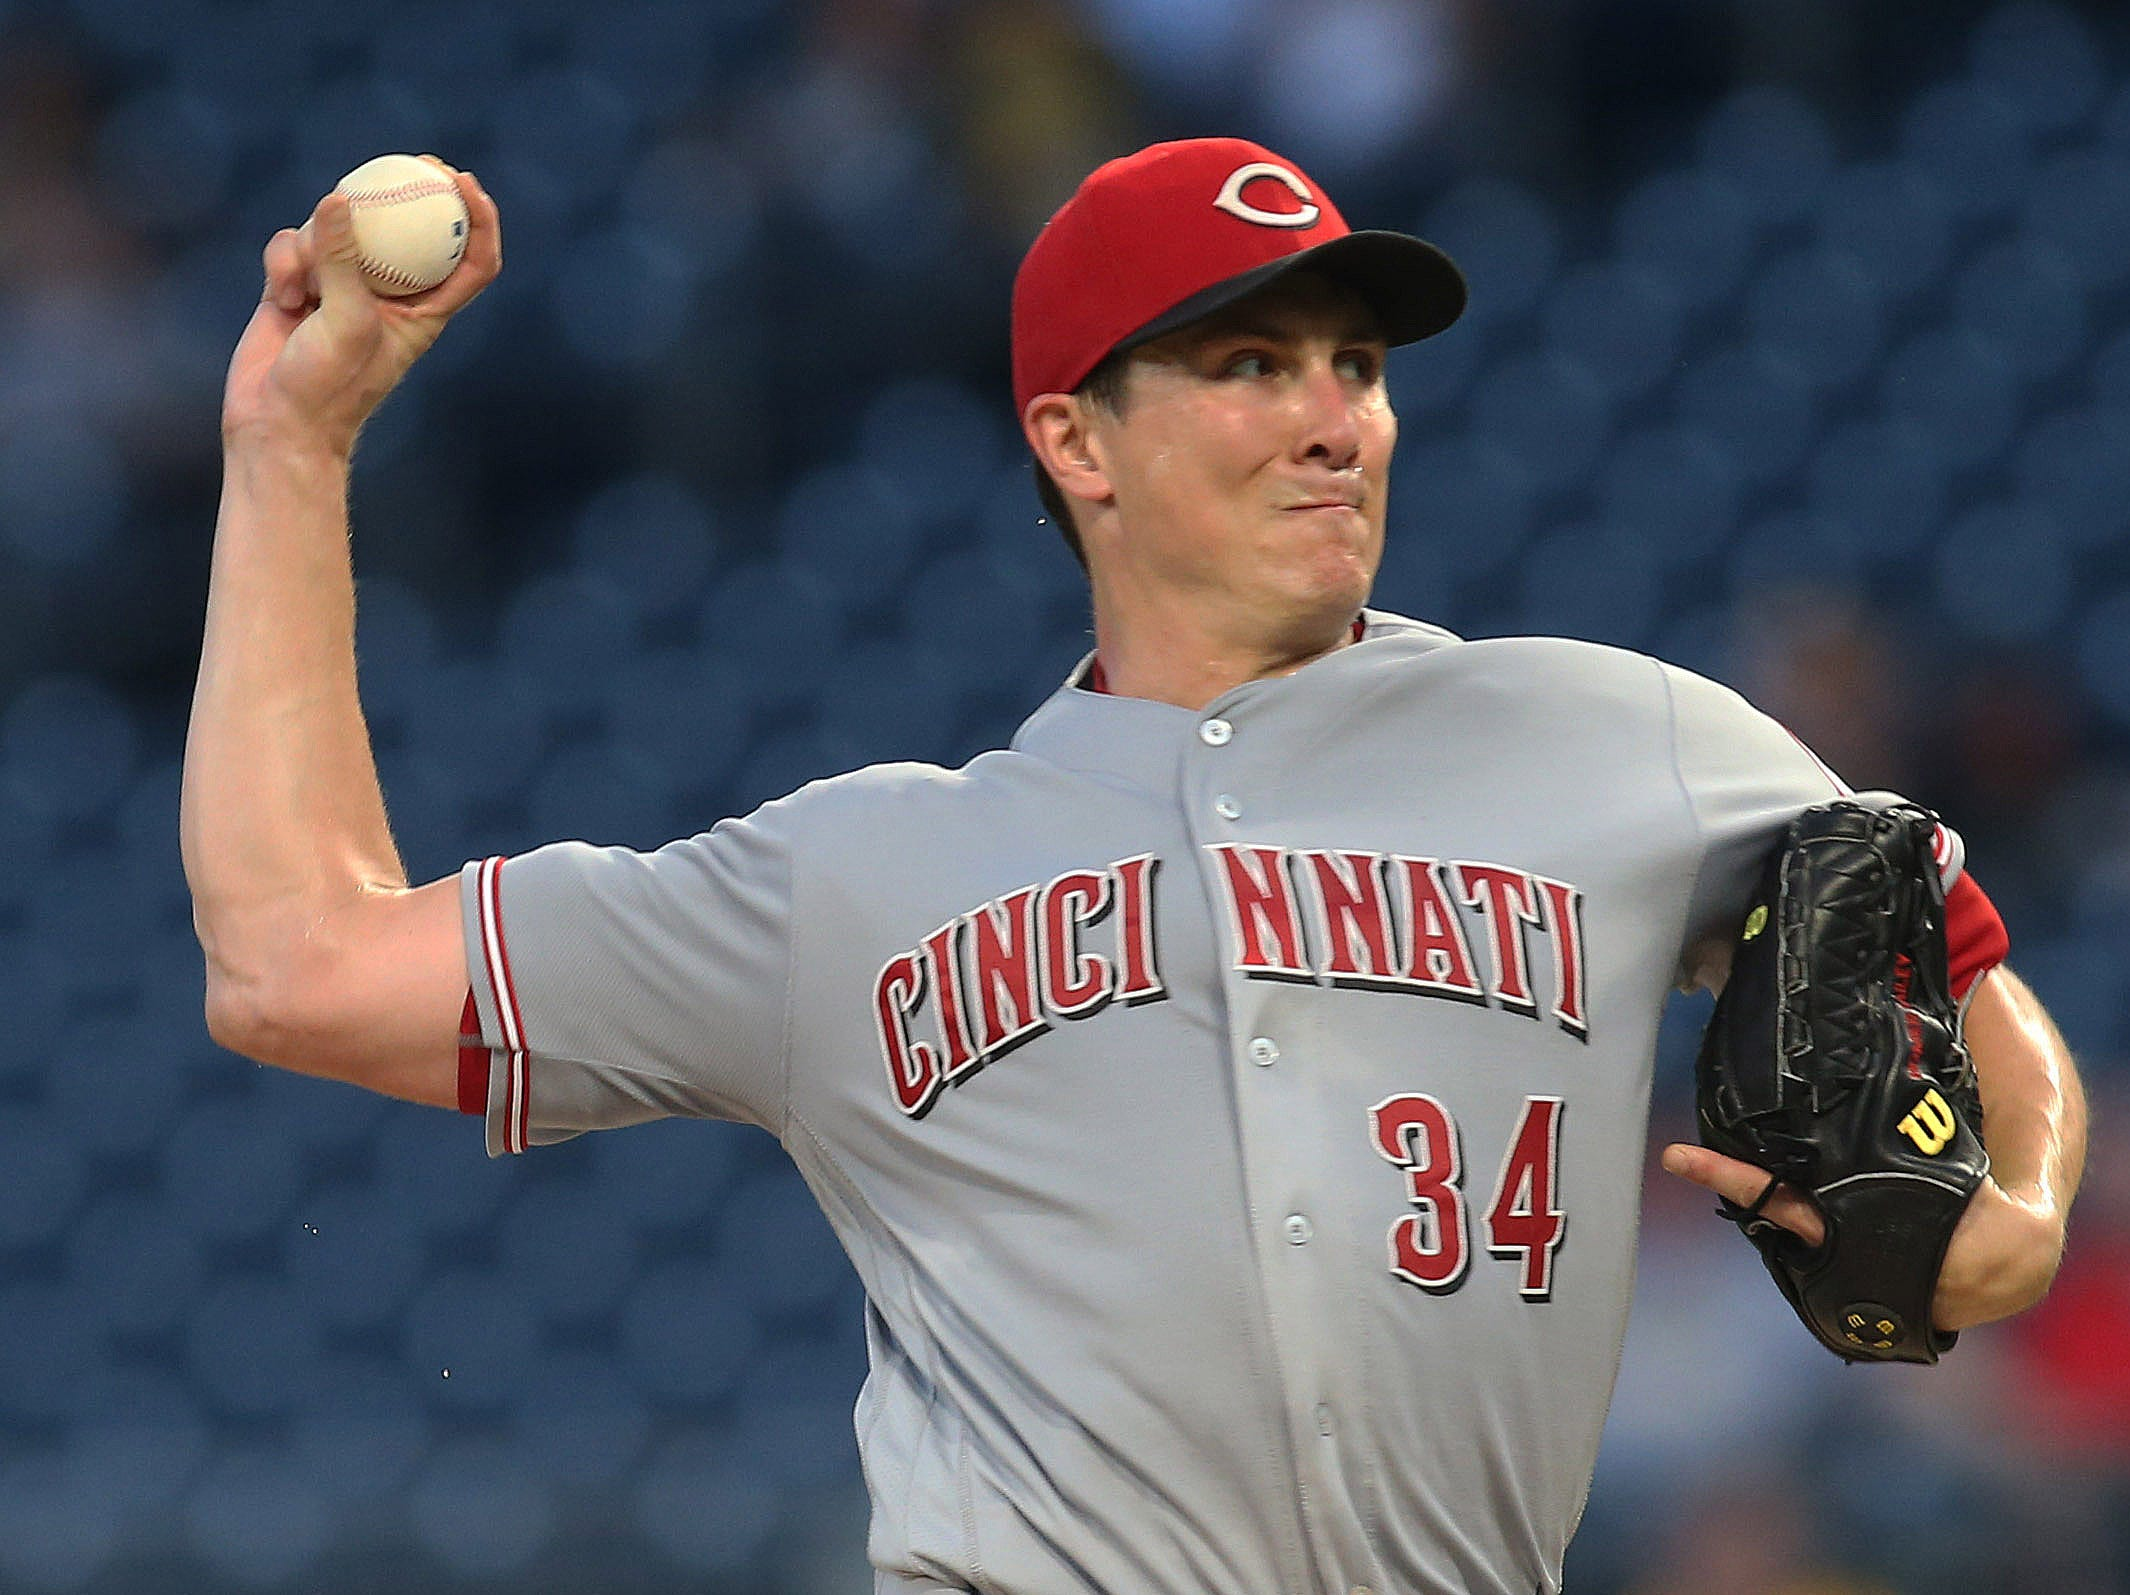 Dec. 21: The Reds traded RHP Homer Bailey and two prospects to the Dodgers for OF Matt Kemp, OF Yasiel Puig and LHP Alex Wood.